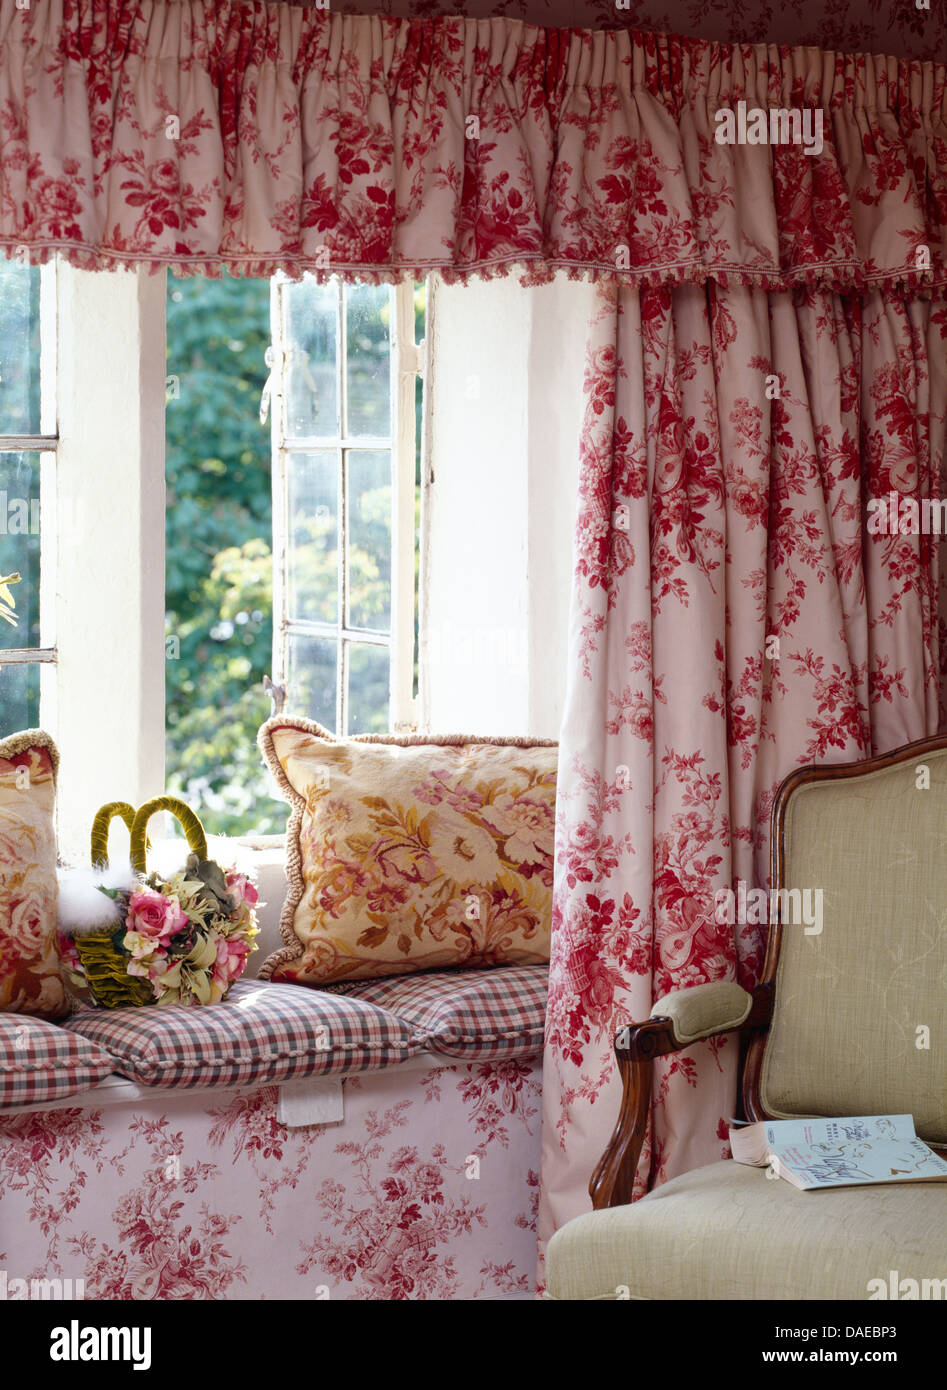 Cottage curtains - Pink Floral Curtains And Pelmet On Open Window Above Window Seat With Floral And Checked Cushions In Cottage Living Room